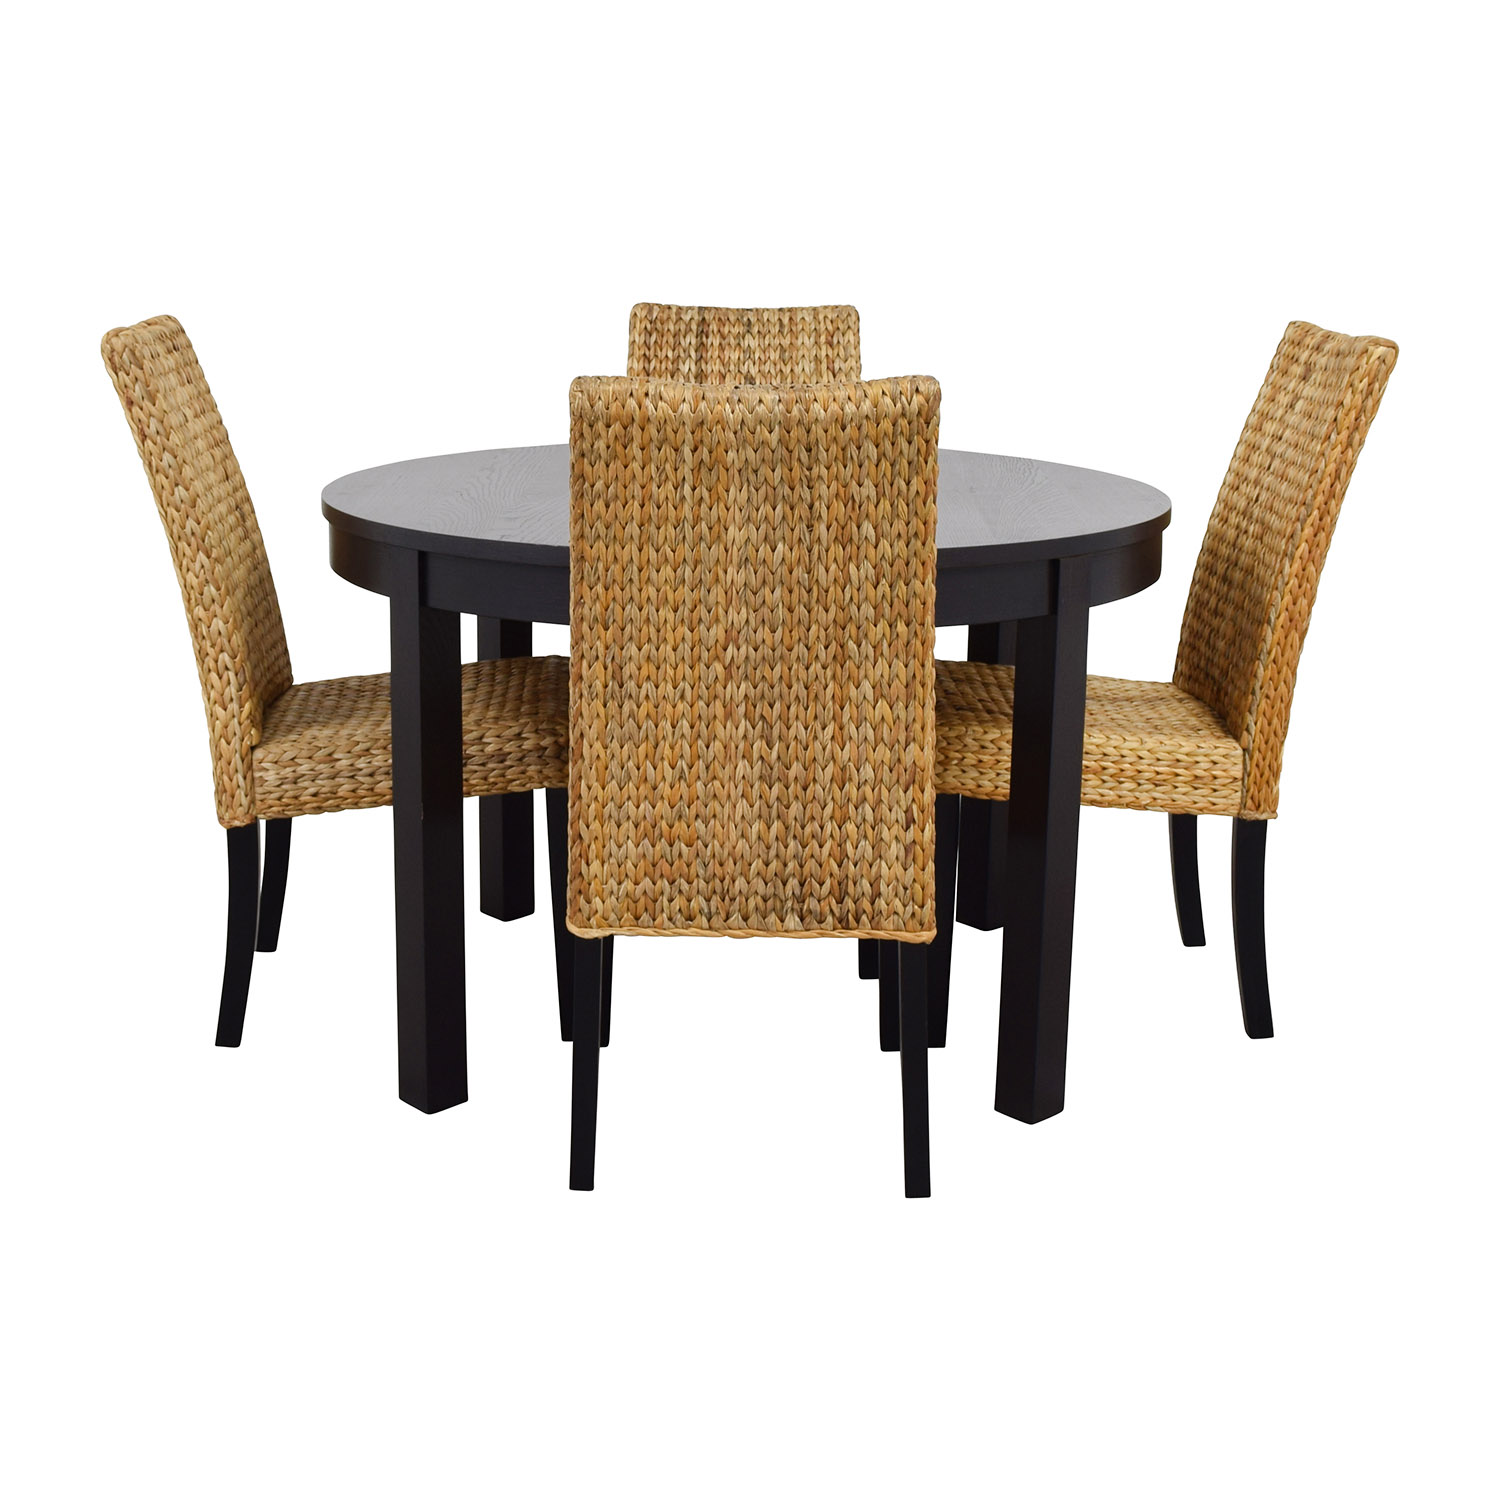 set of dining chairs antique morris chair cushions 66 off macy 39s and ikea round black table with